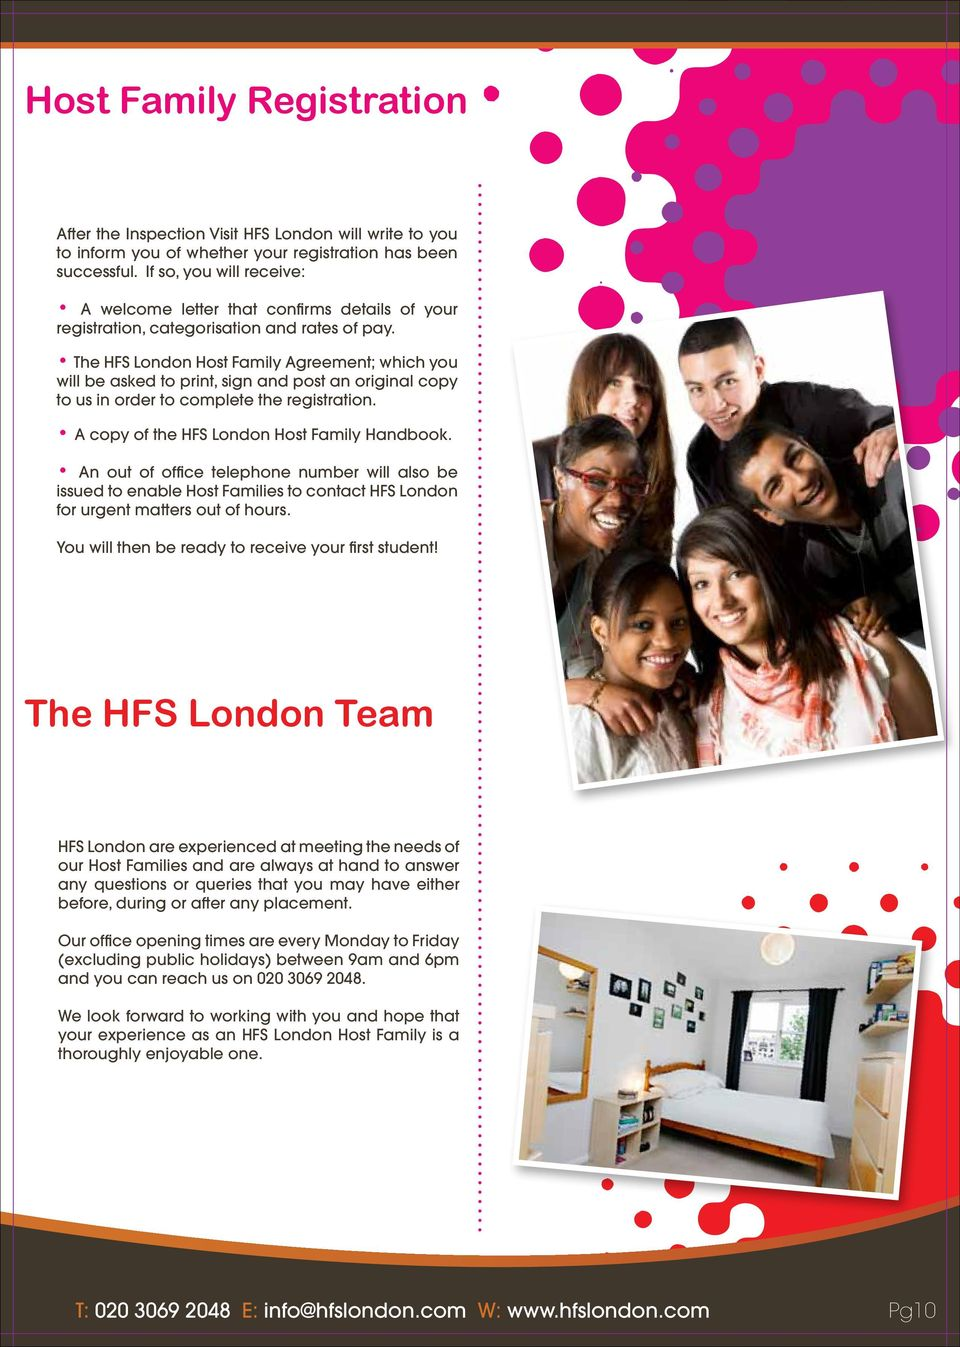 The HFS London Host Family Agreement; which you will be asked to print, sign and post an original copy to us in order to complete the registration. A copy of the HFS London Host Family Handbook.